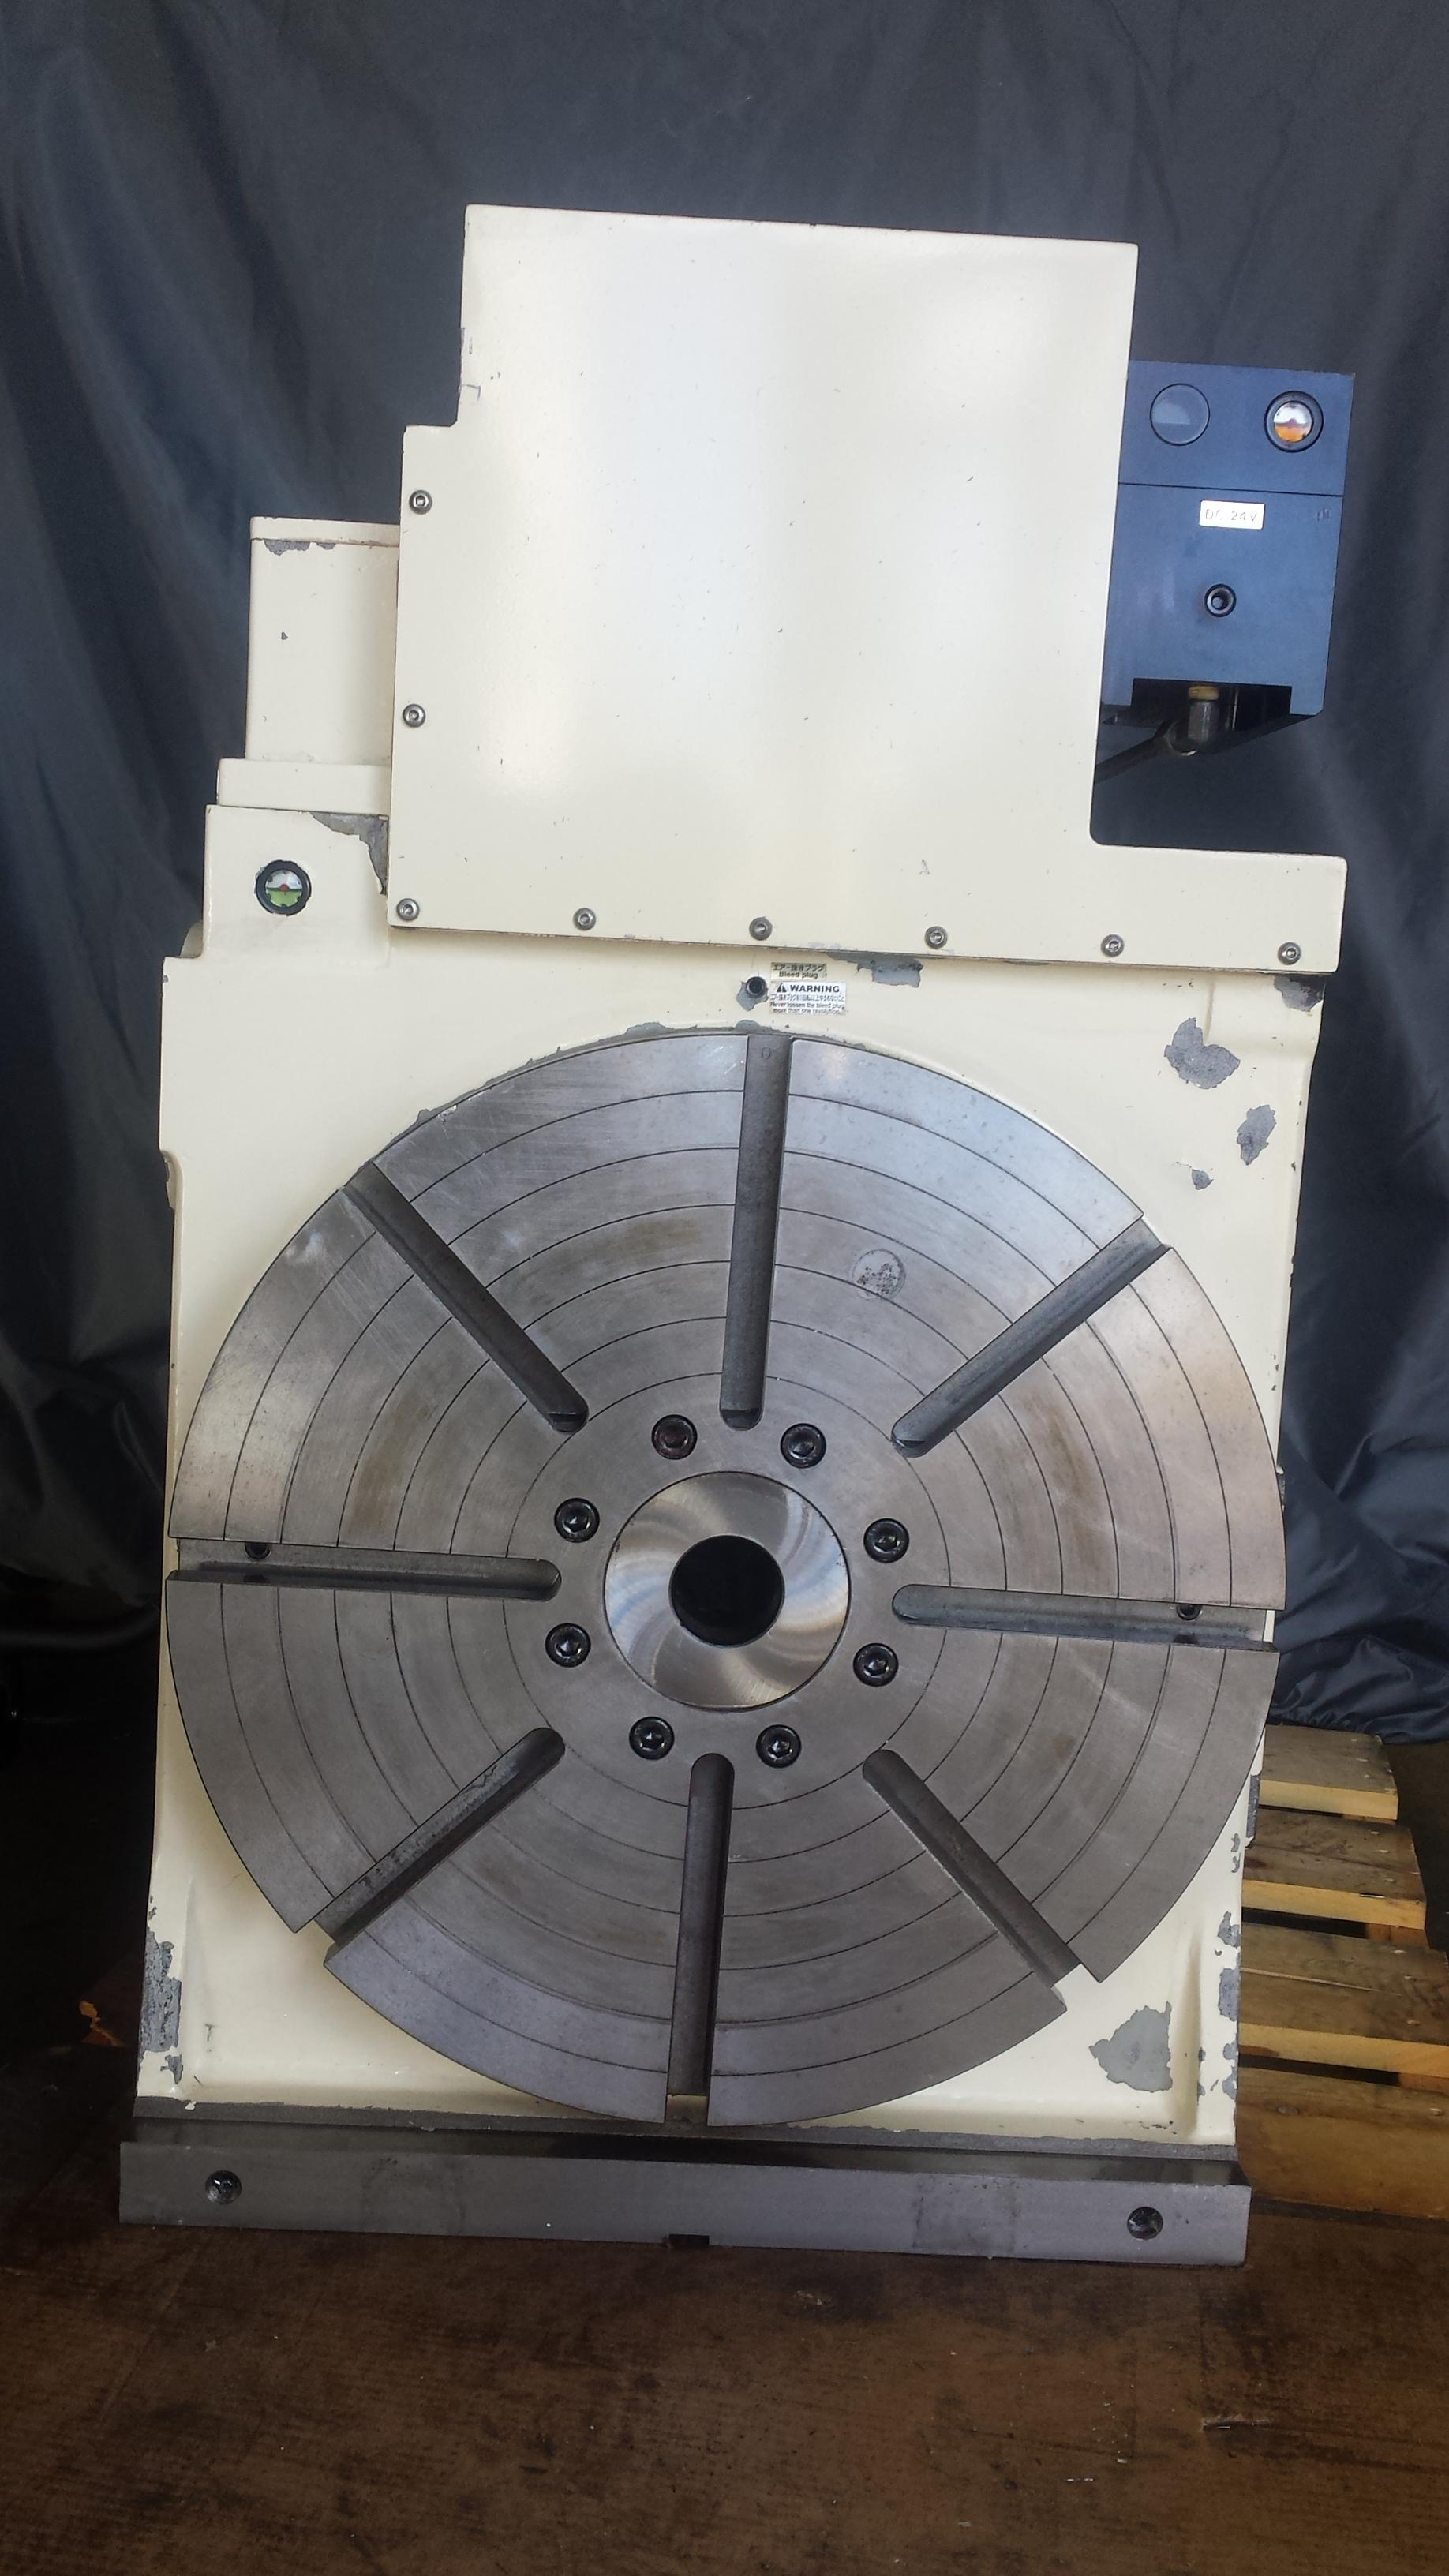 Tsudakoma RNCK-501 Rotary Table